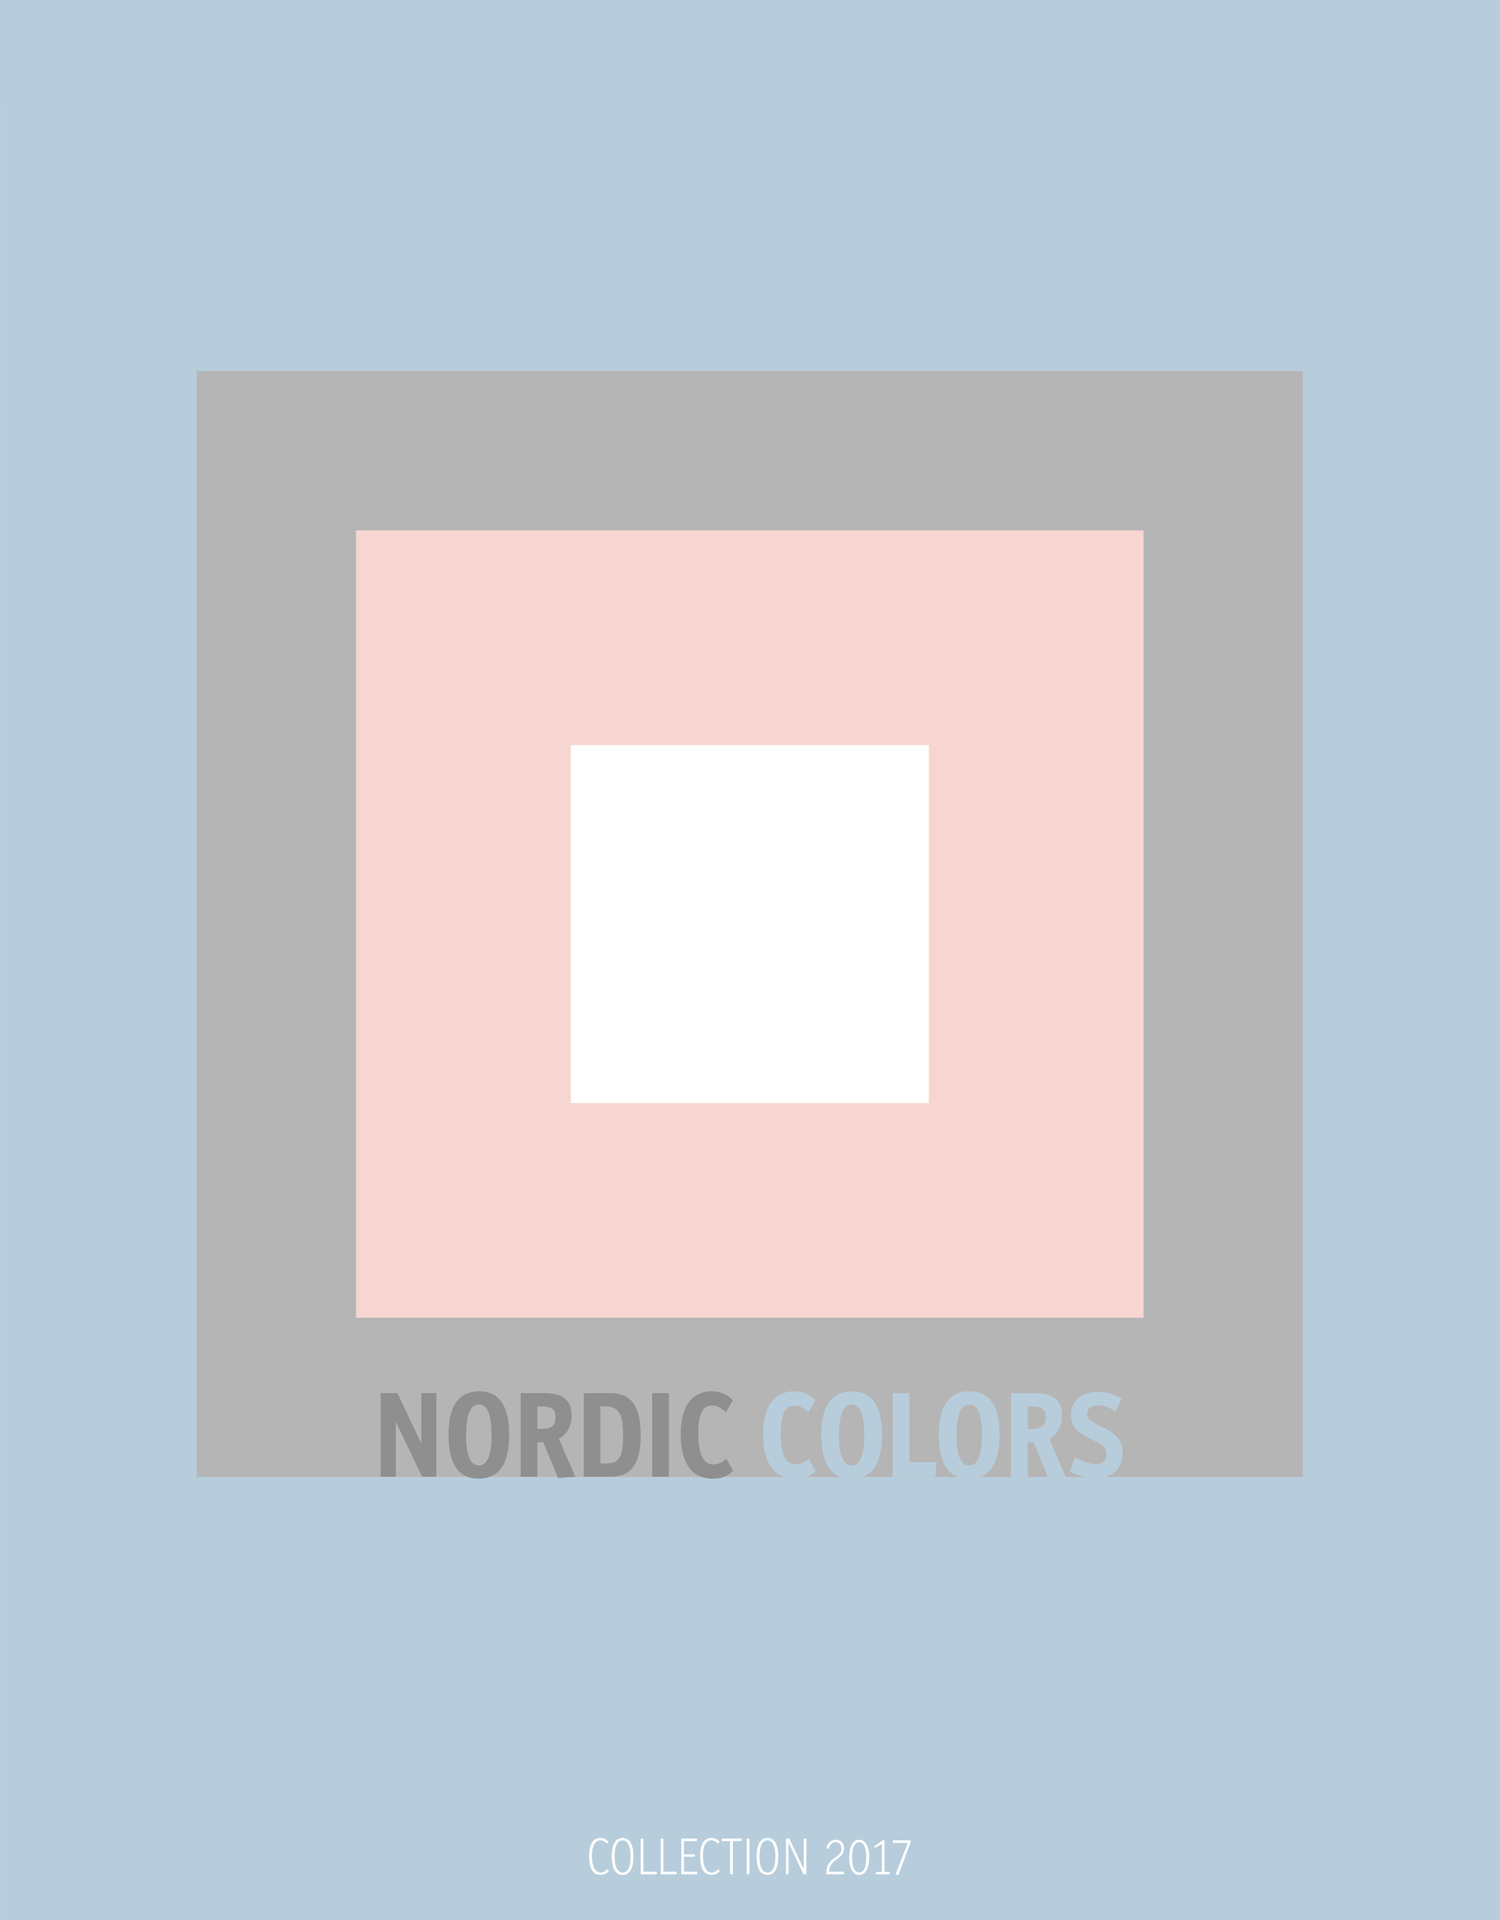 Nordic Colors